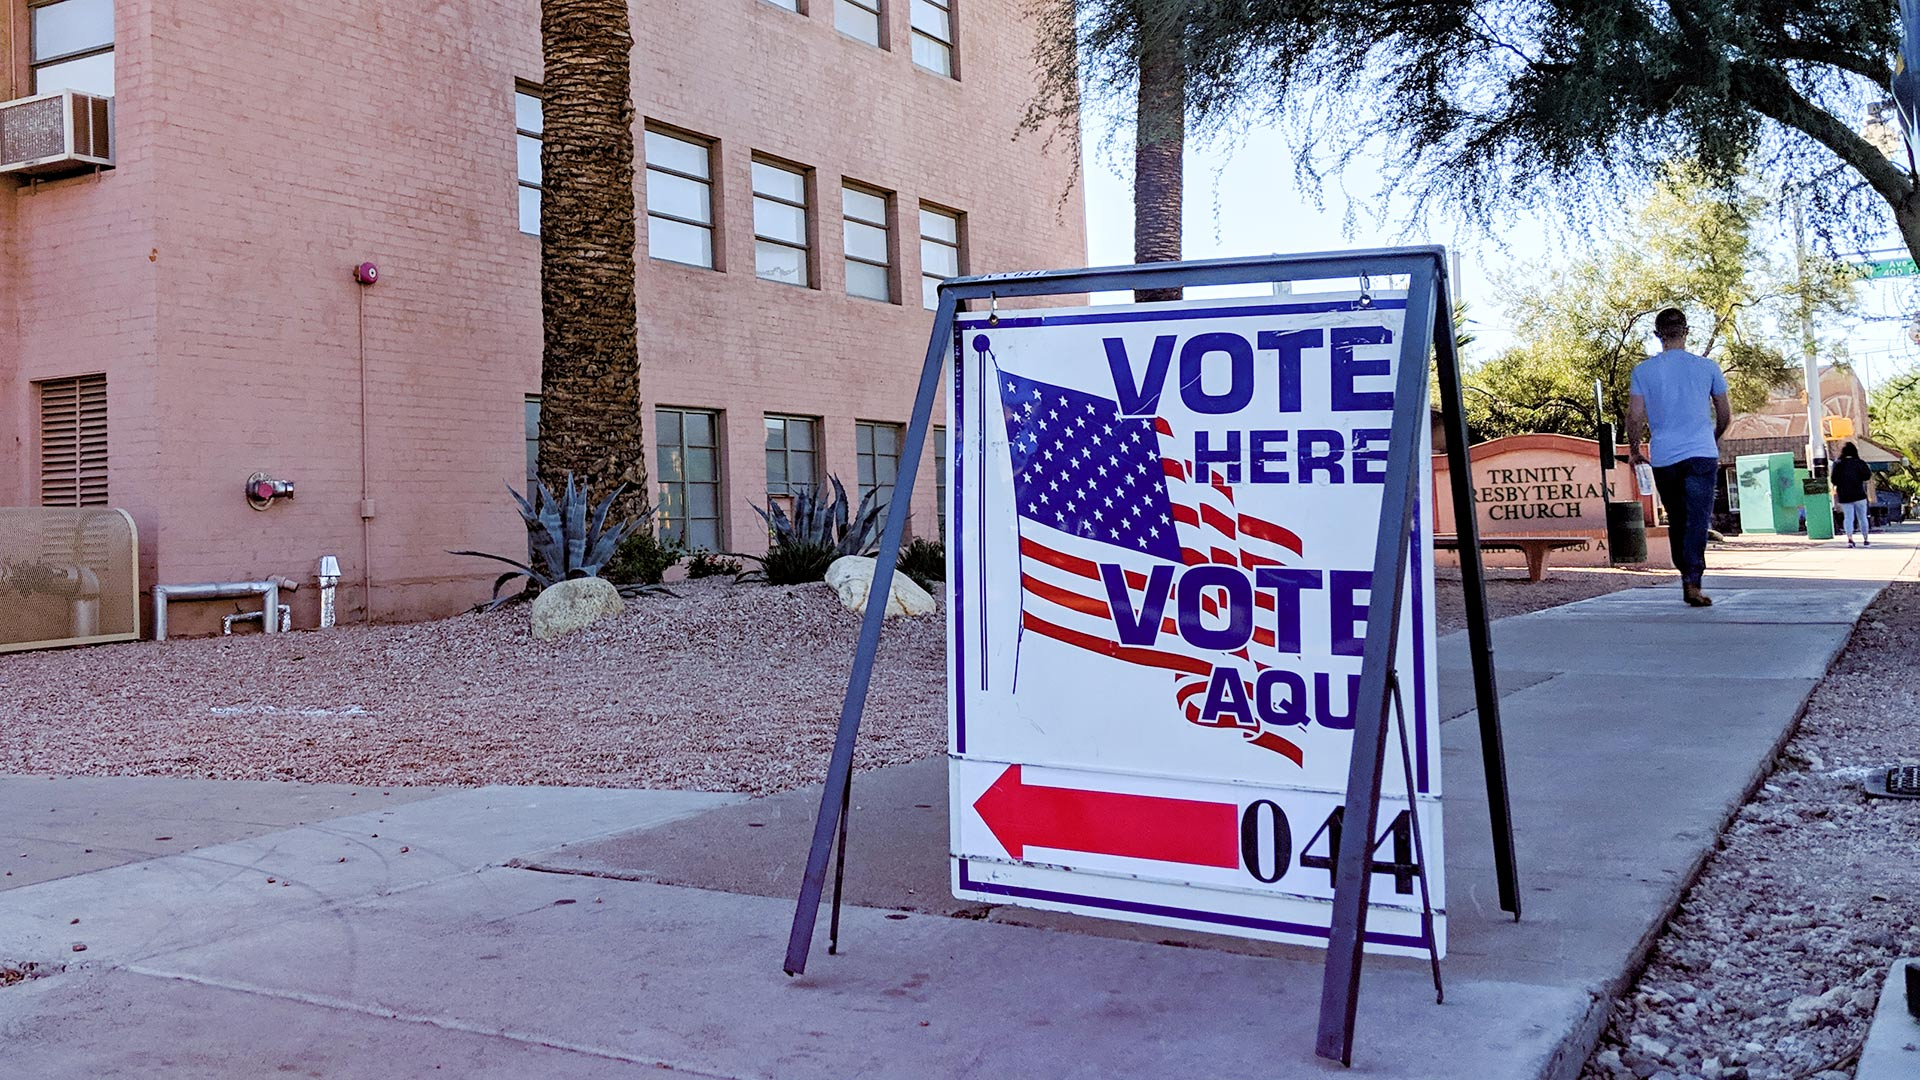 Ensuring security in Arizona elections